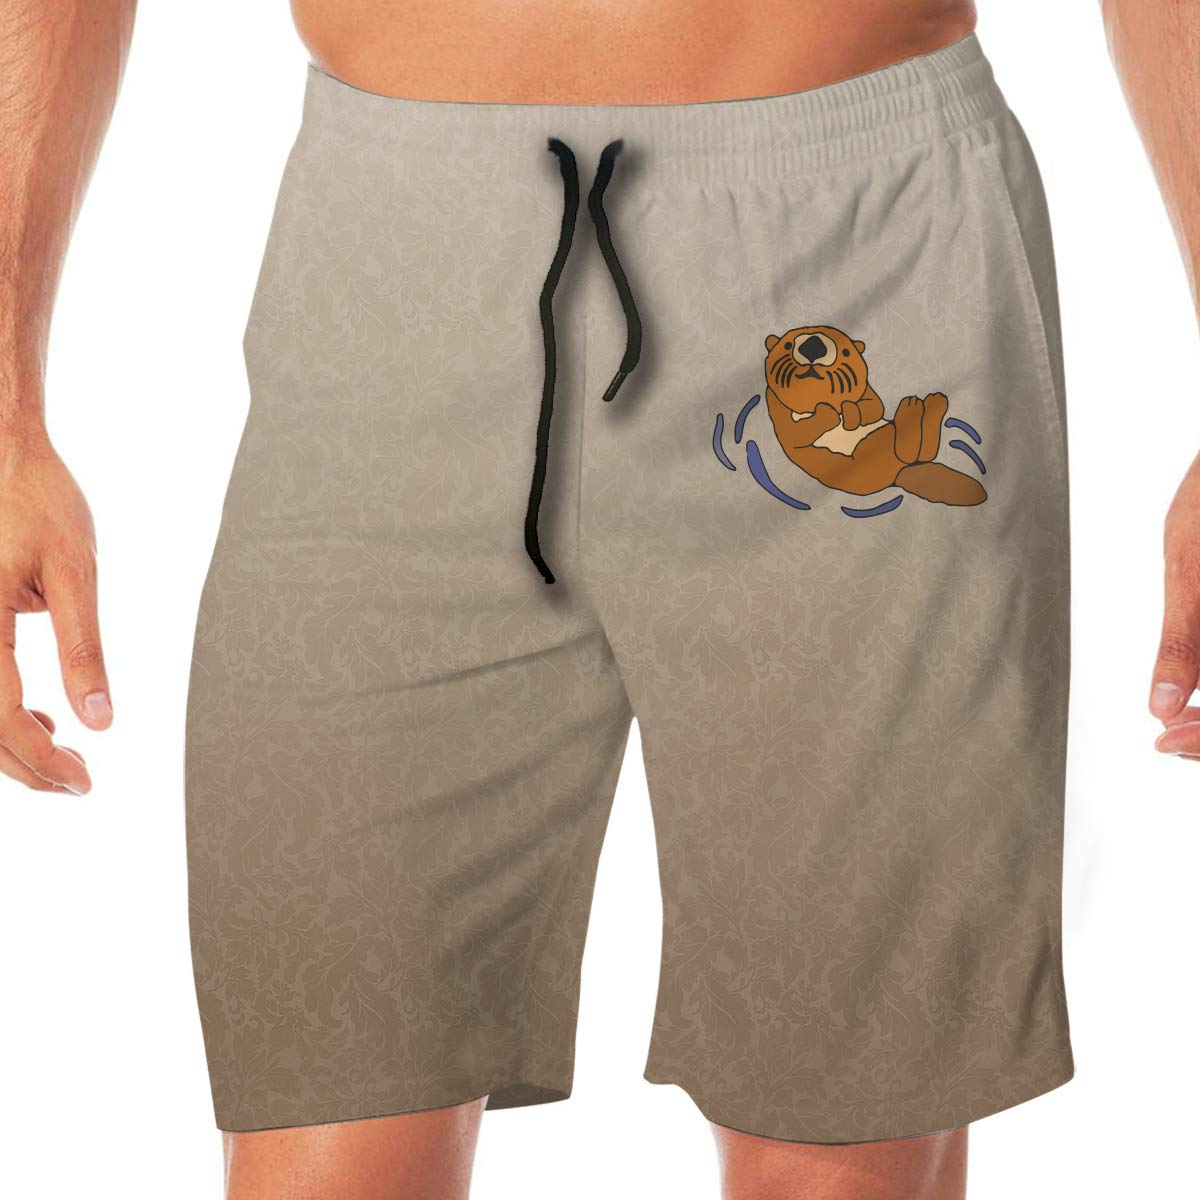 CZD89 Floating Sea Otter Surfing Shorts Quick Dry Beach Holiday